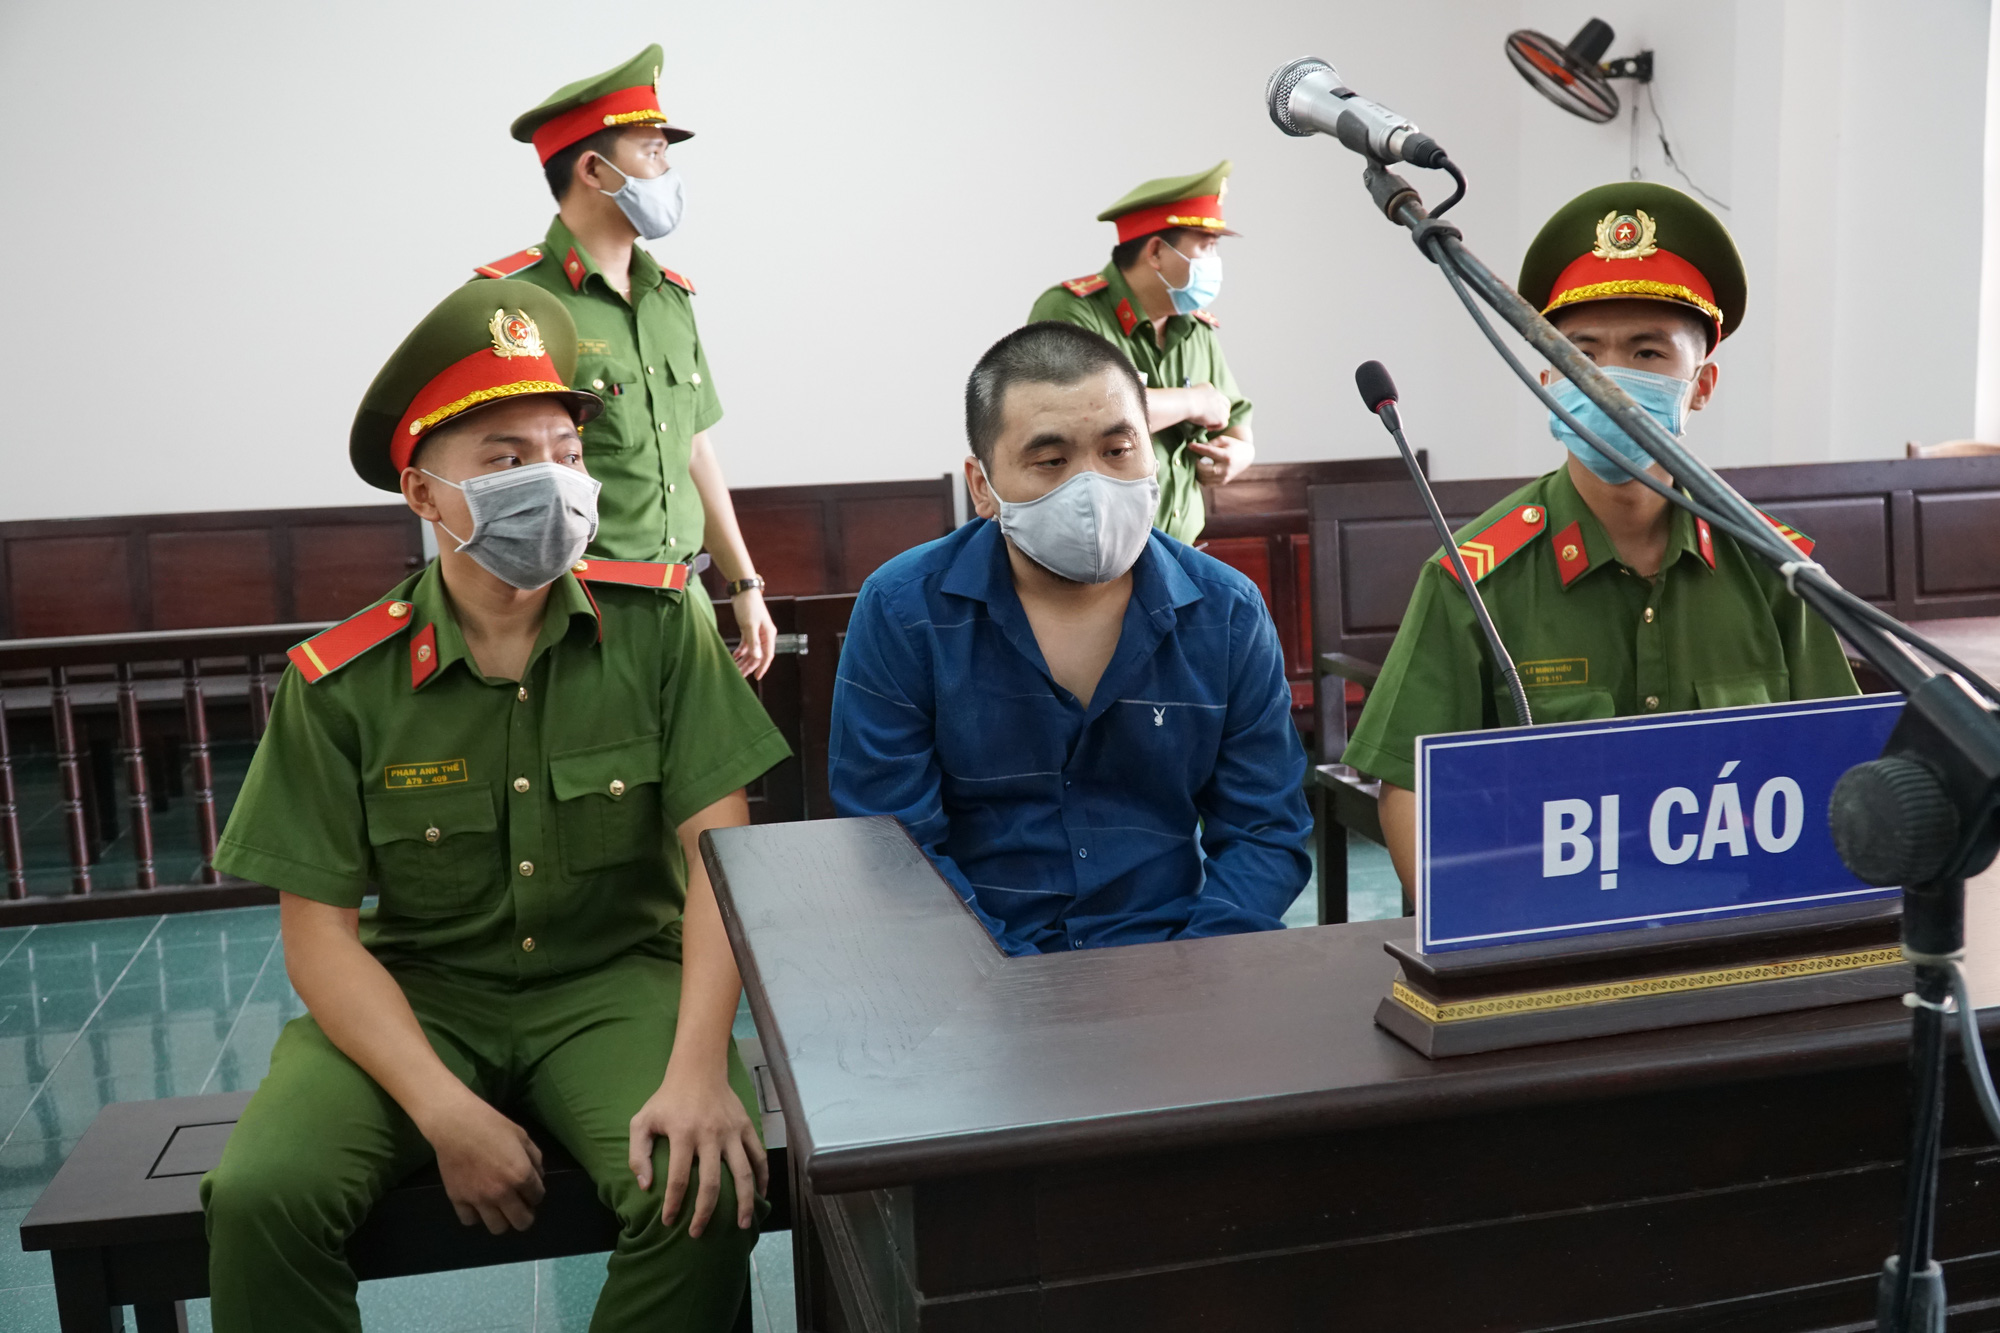 Vietnam man jailed for 7.5 years for killing one, injuring another in car crash